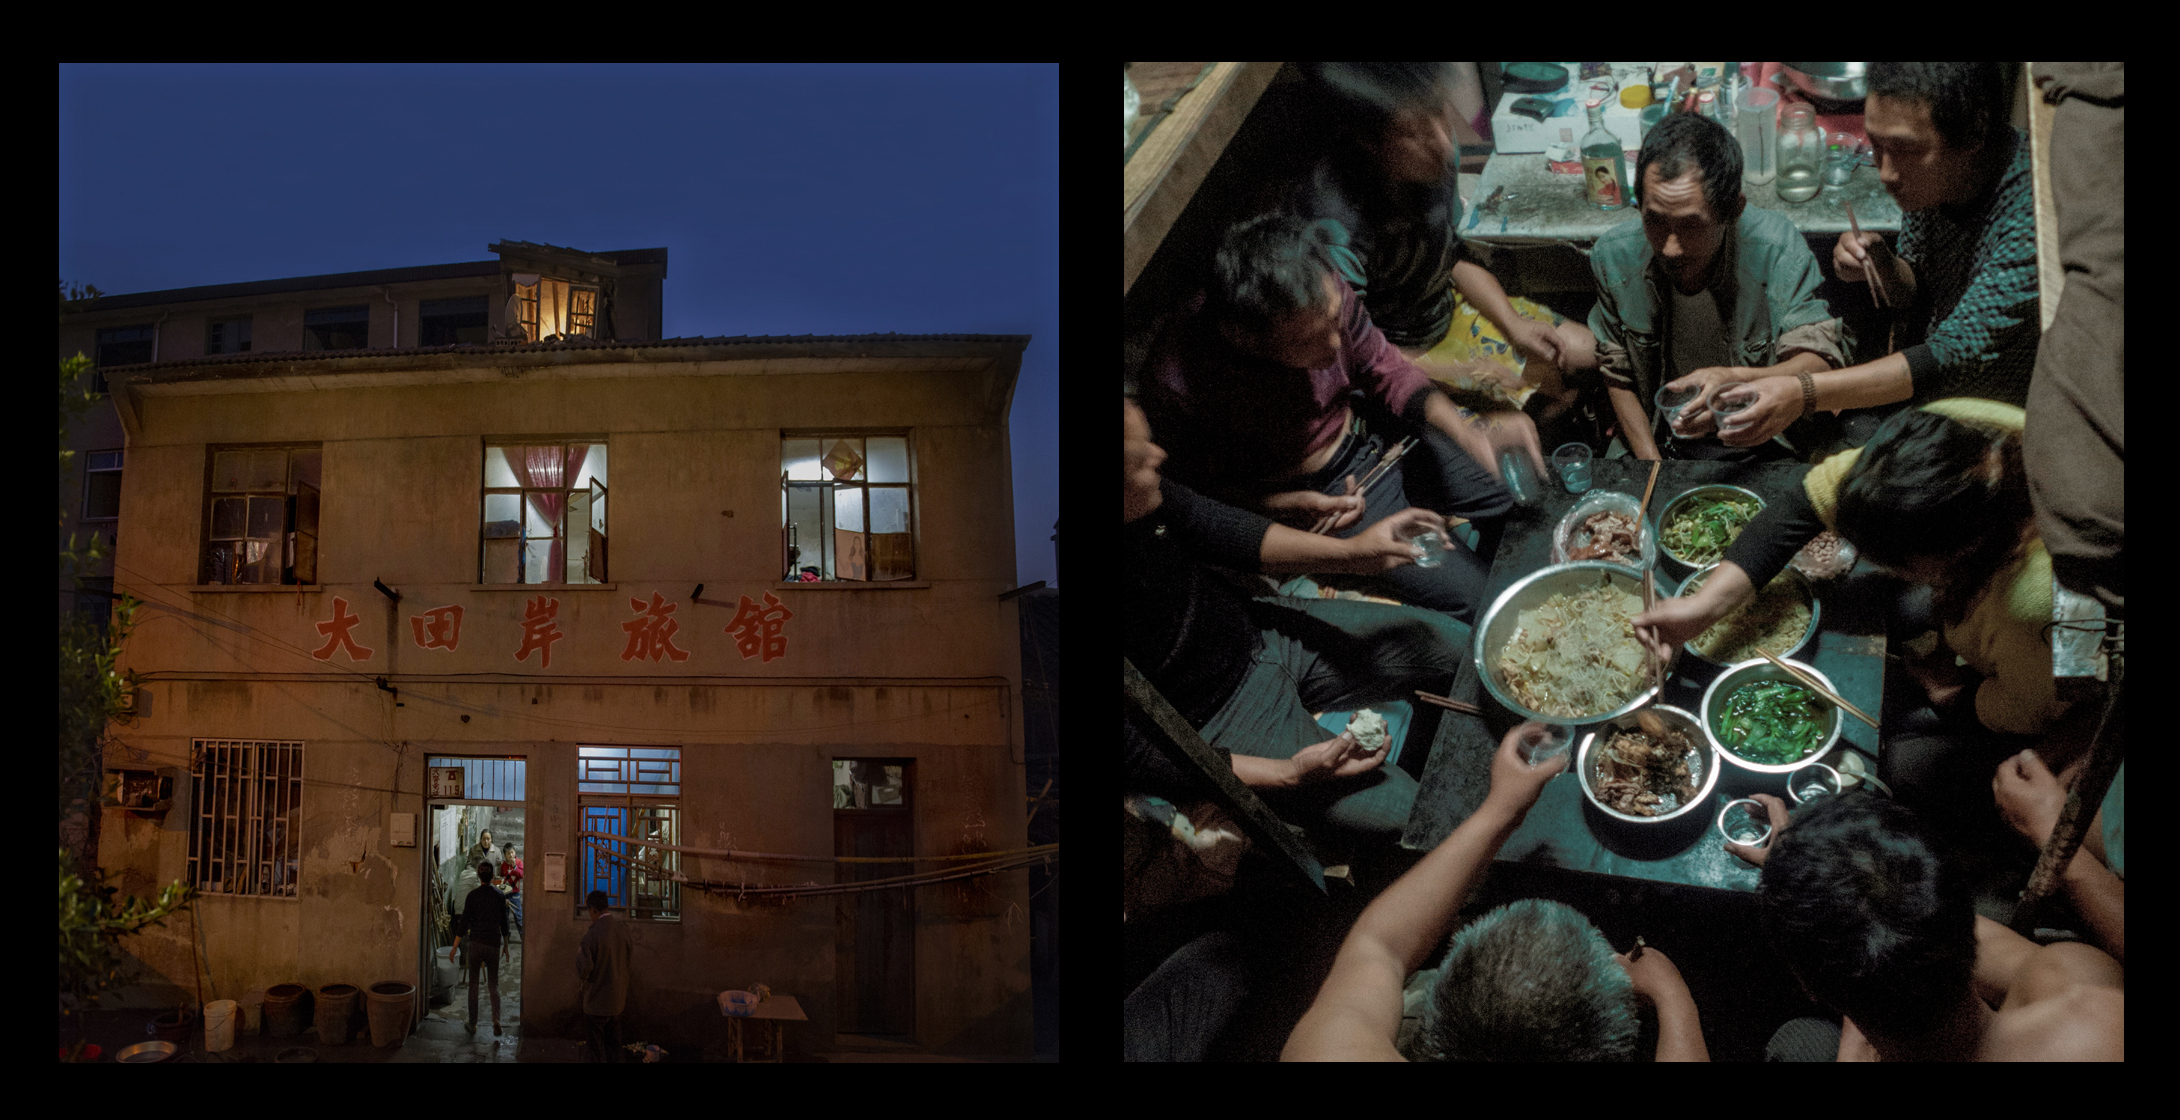 Located in the city of Wuxi, in Jiangsu province, the Big Paddy's Edge Inn served as a roost for low-income laborers beginning in 1981 when it first opened for business. Residents said that though their means were meager, they got along amiably, and most of the tenants were old friends. On holidays they would gather together to drink and celebrate over potluck meals, and sometimes the hotel manager and owner, Ms. Gu, would treat everyone to dinner.